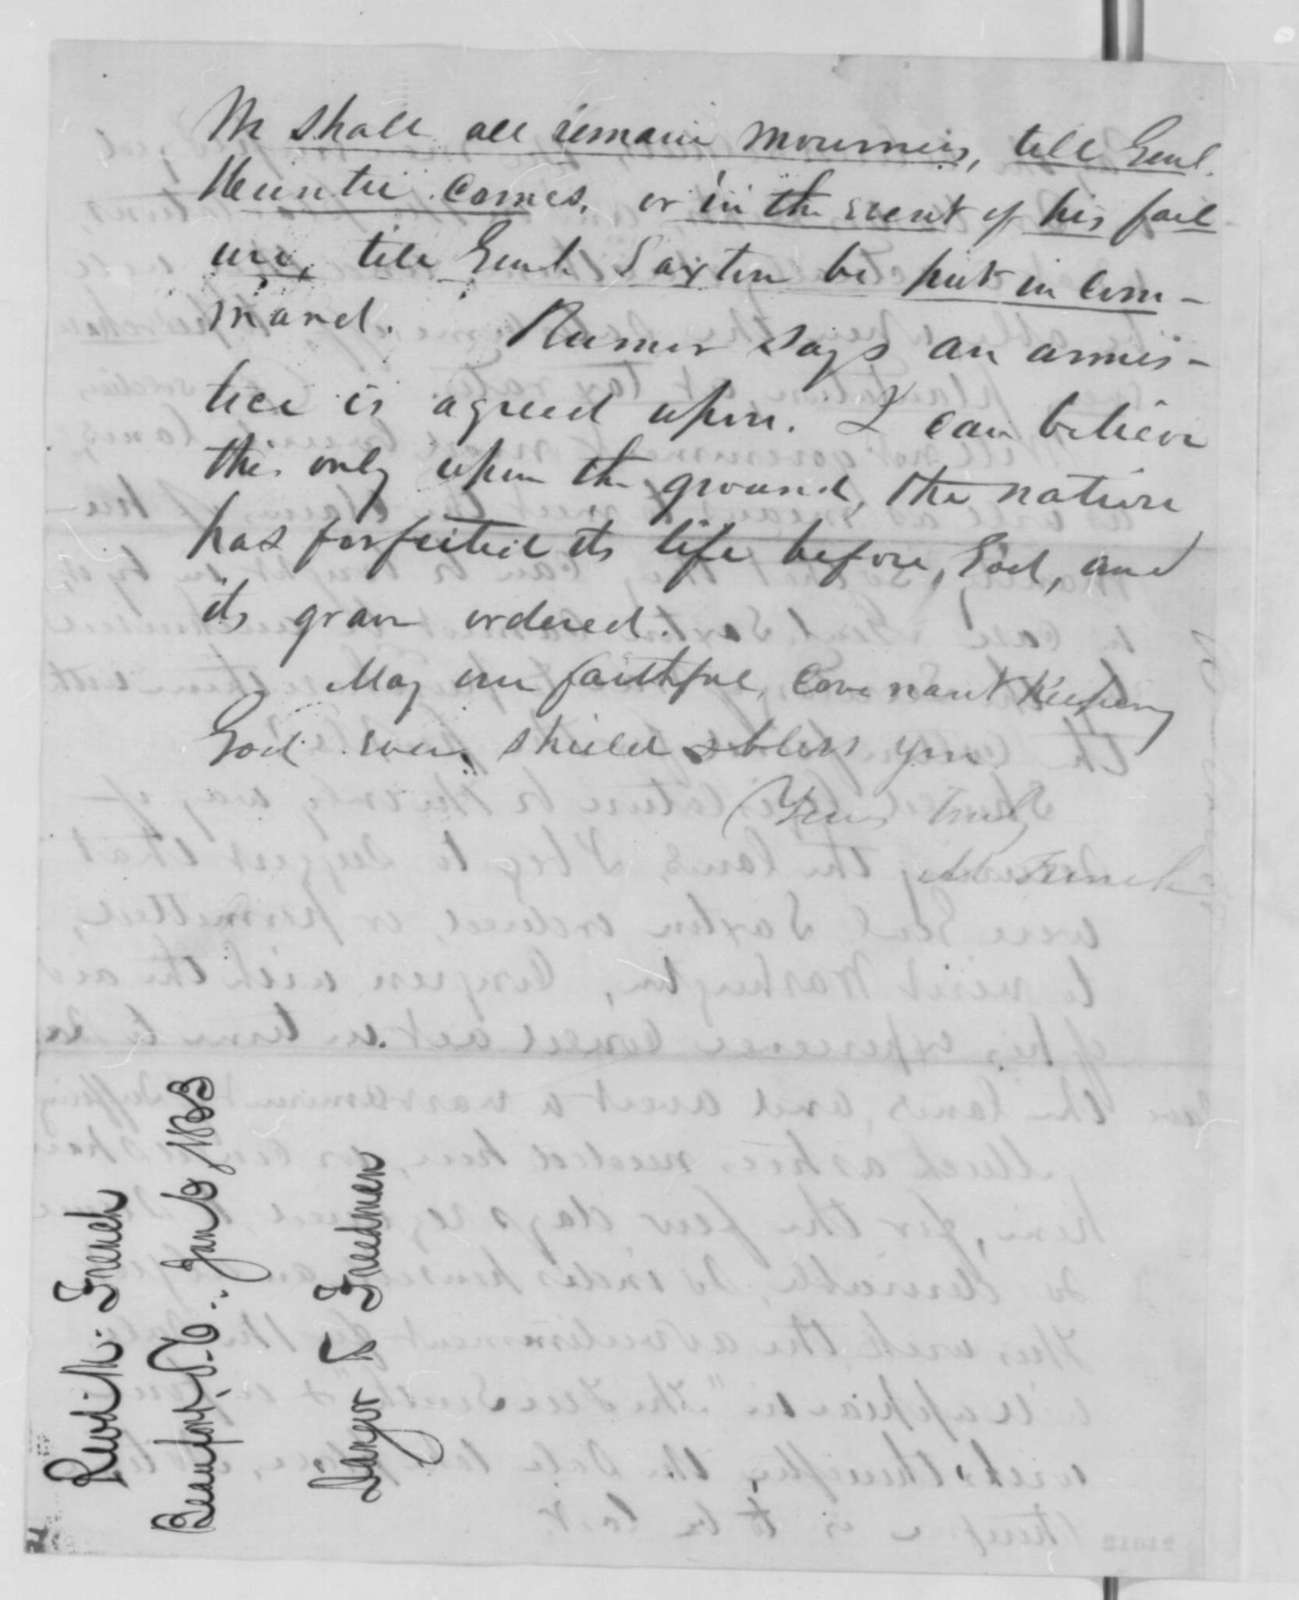 Mansfield French to Salmon P. Chase, Tuesday, January 06, 1863  (Condition of freedmen in South Carolina)